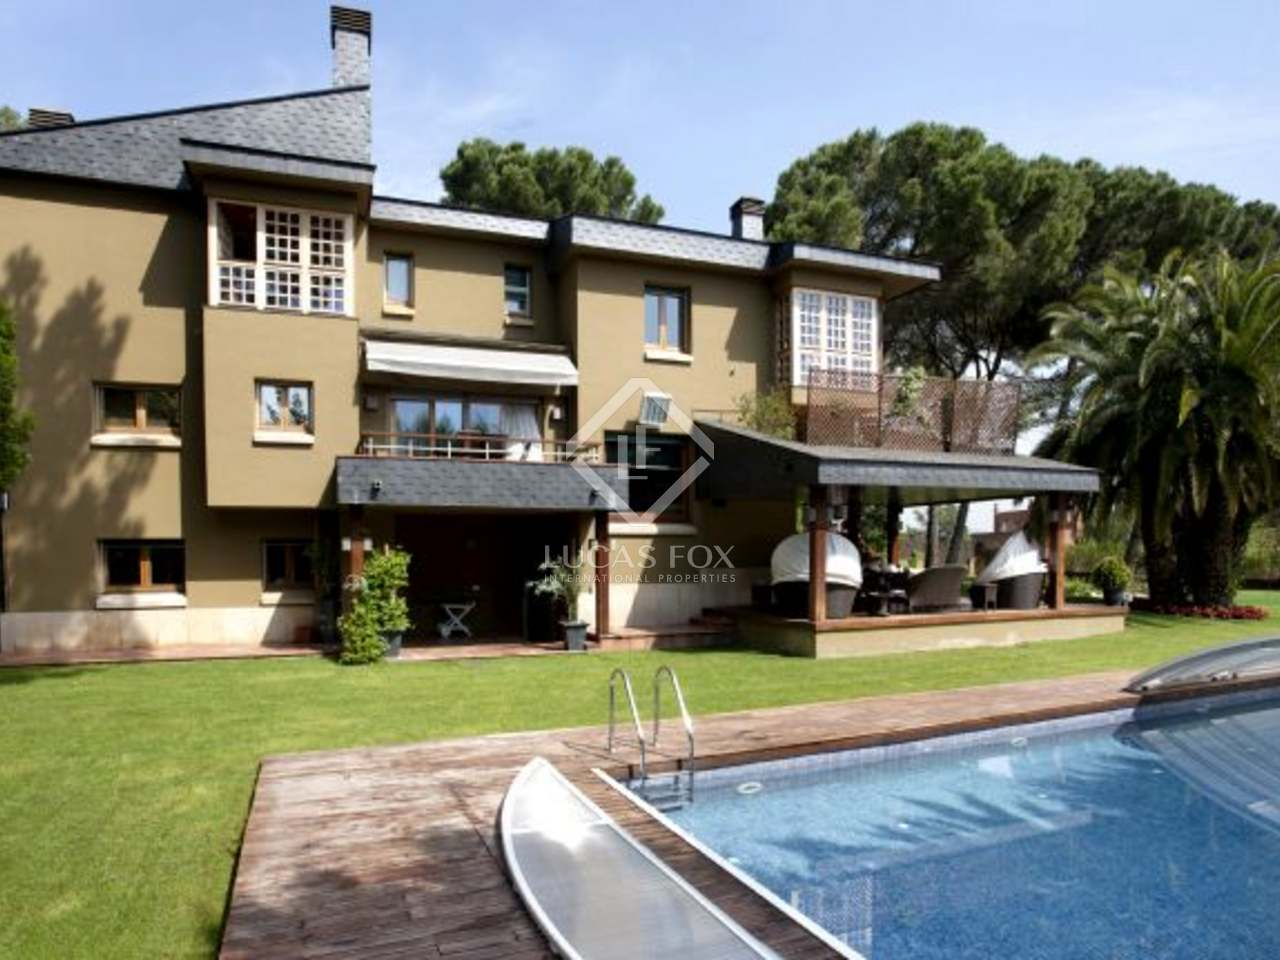 Luxury house for sale in sant cugat valldoreix barcelona for Corner 4 sant cugat